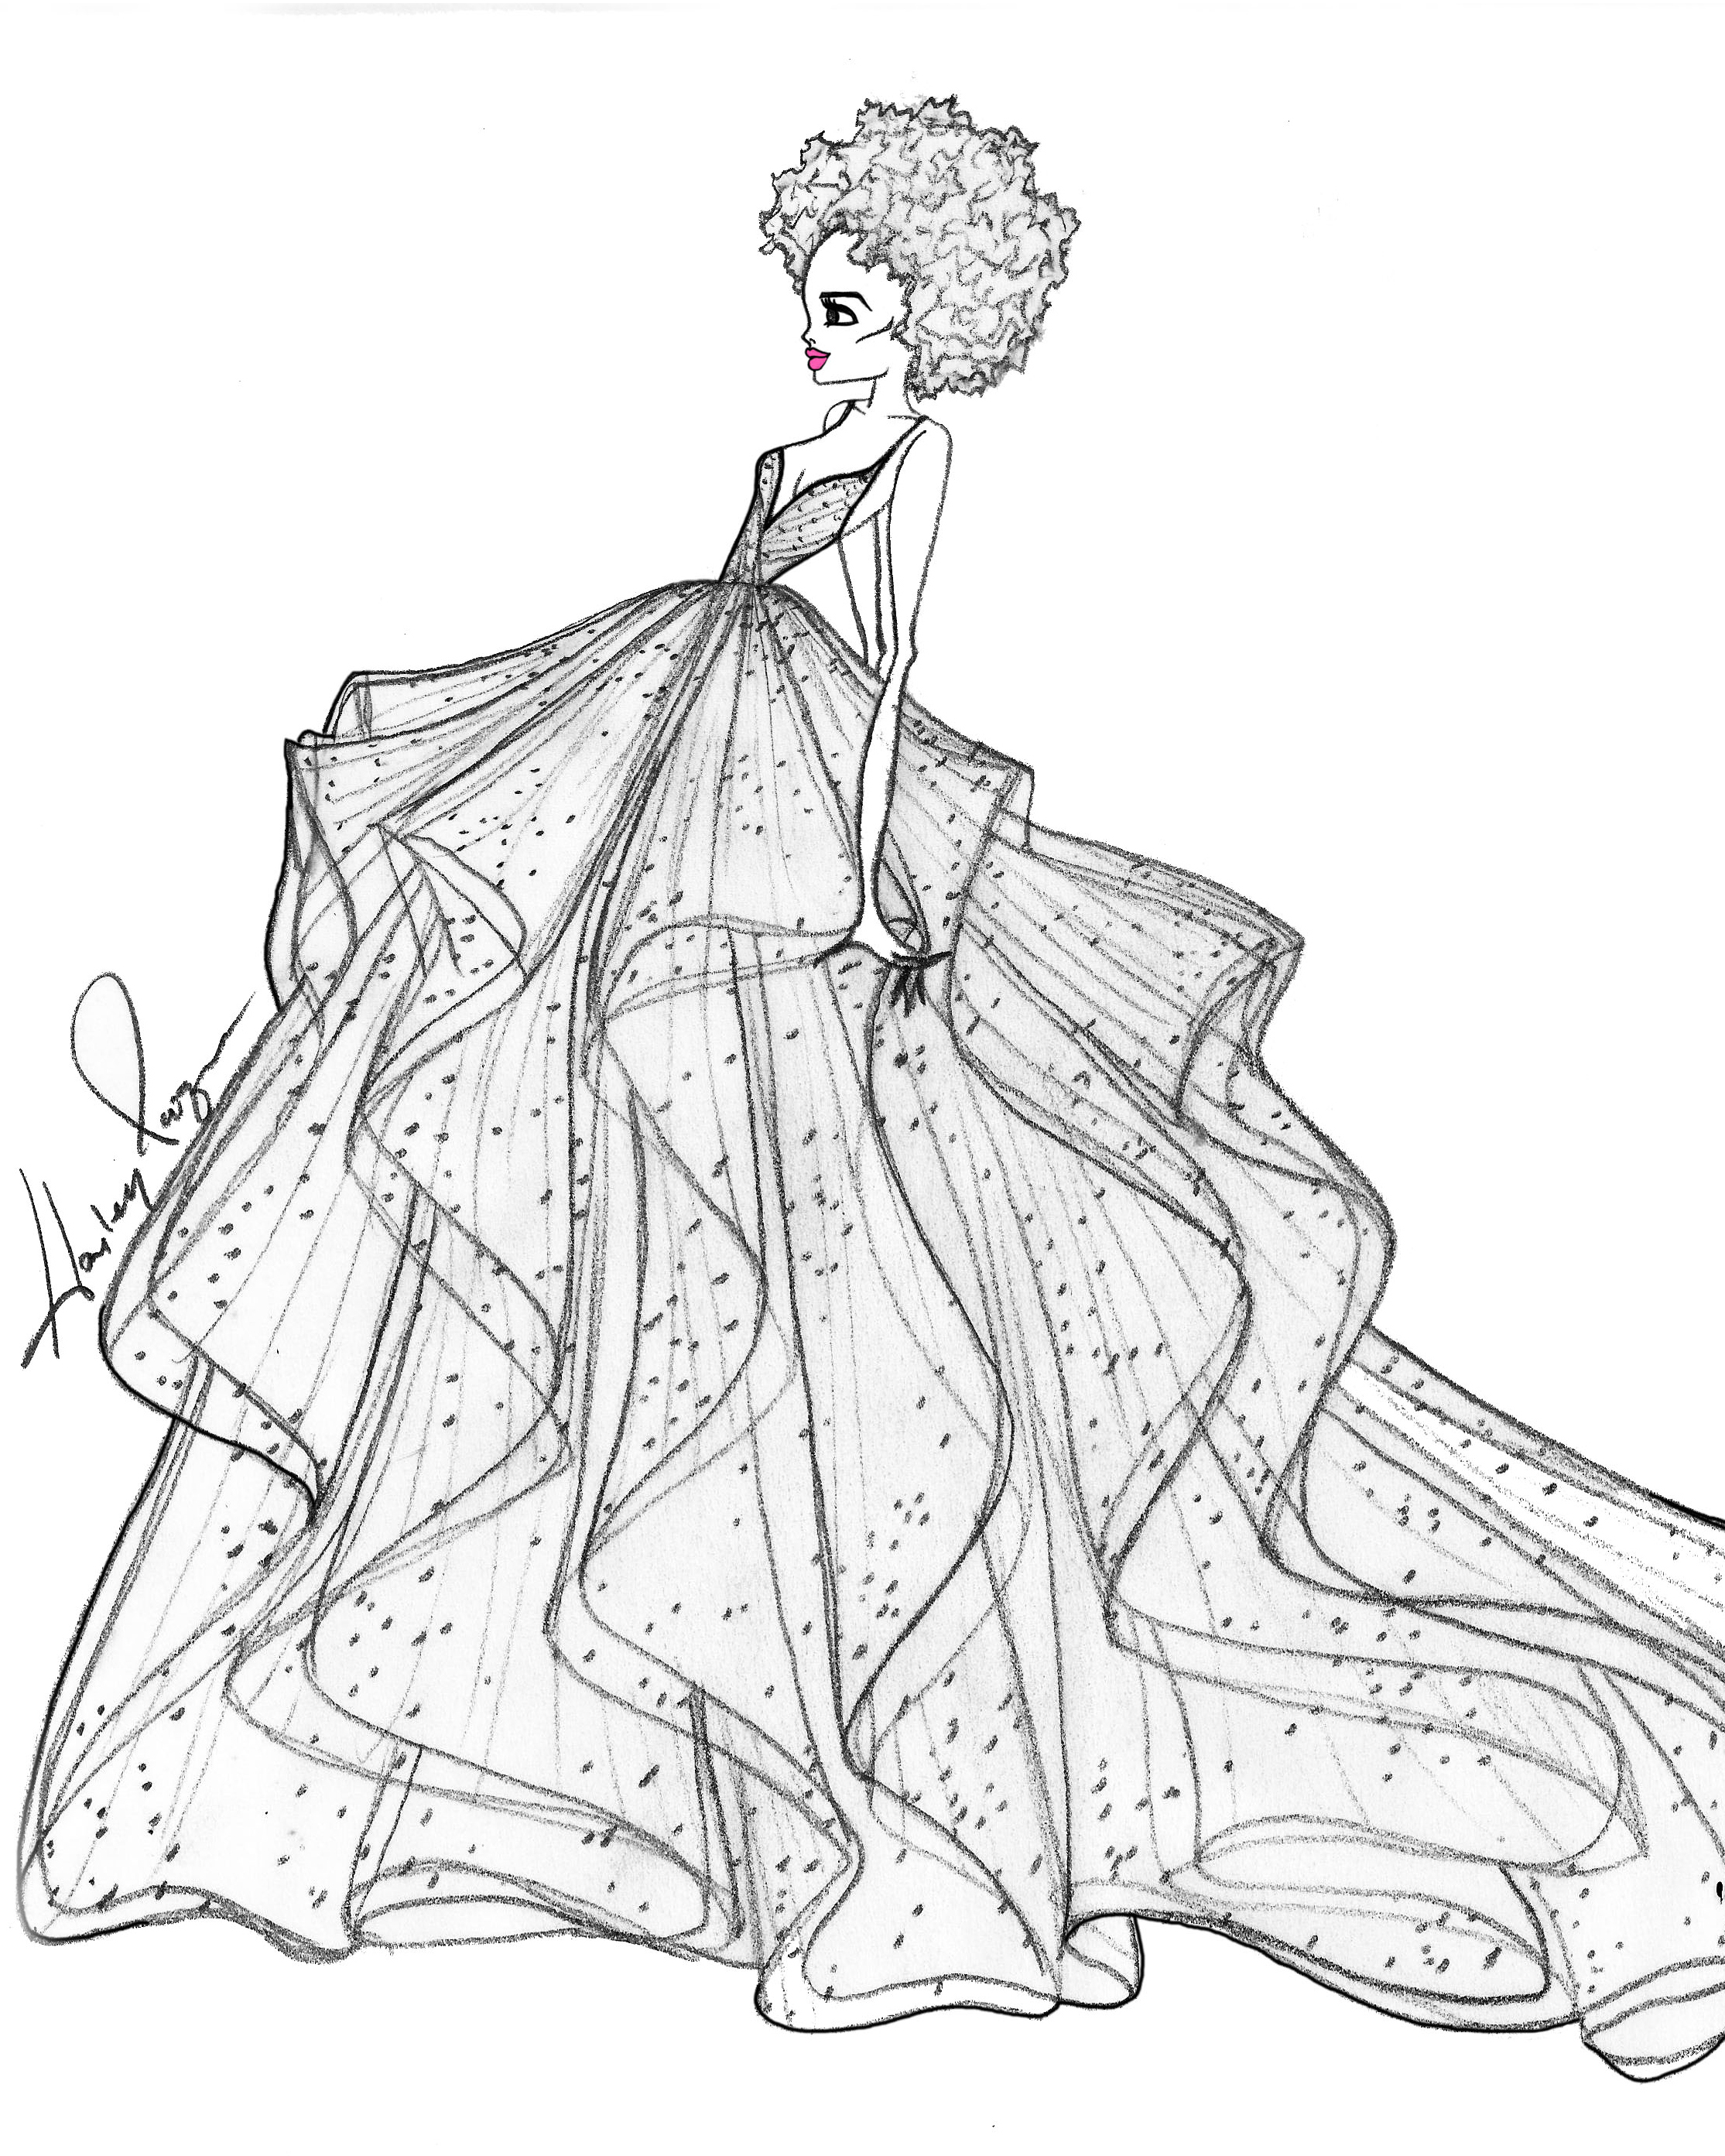 hayley-paige-fall-2017-exclusive-wedding-dress-sketch-0916.jpg